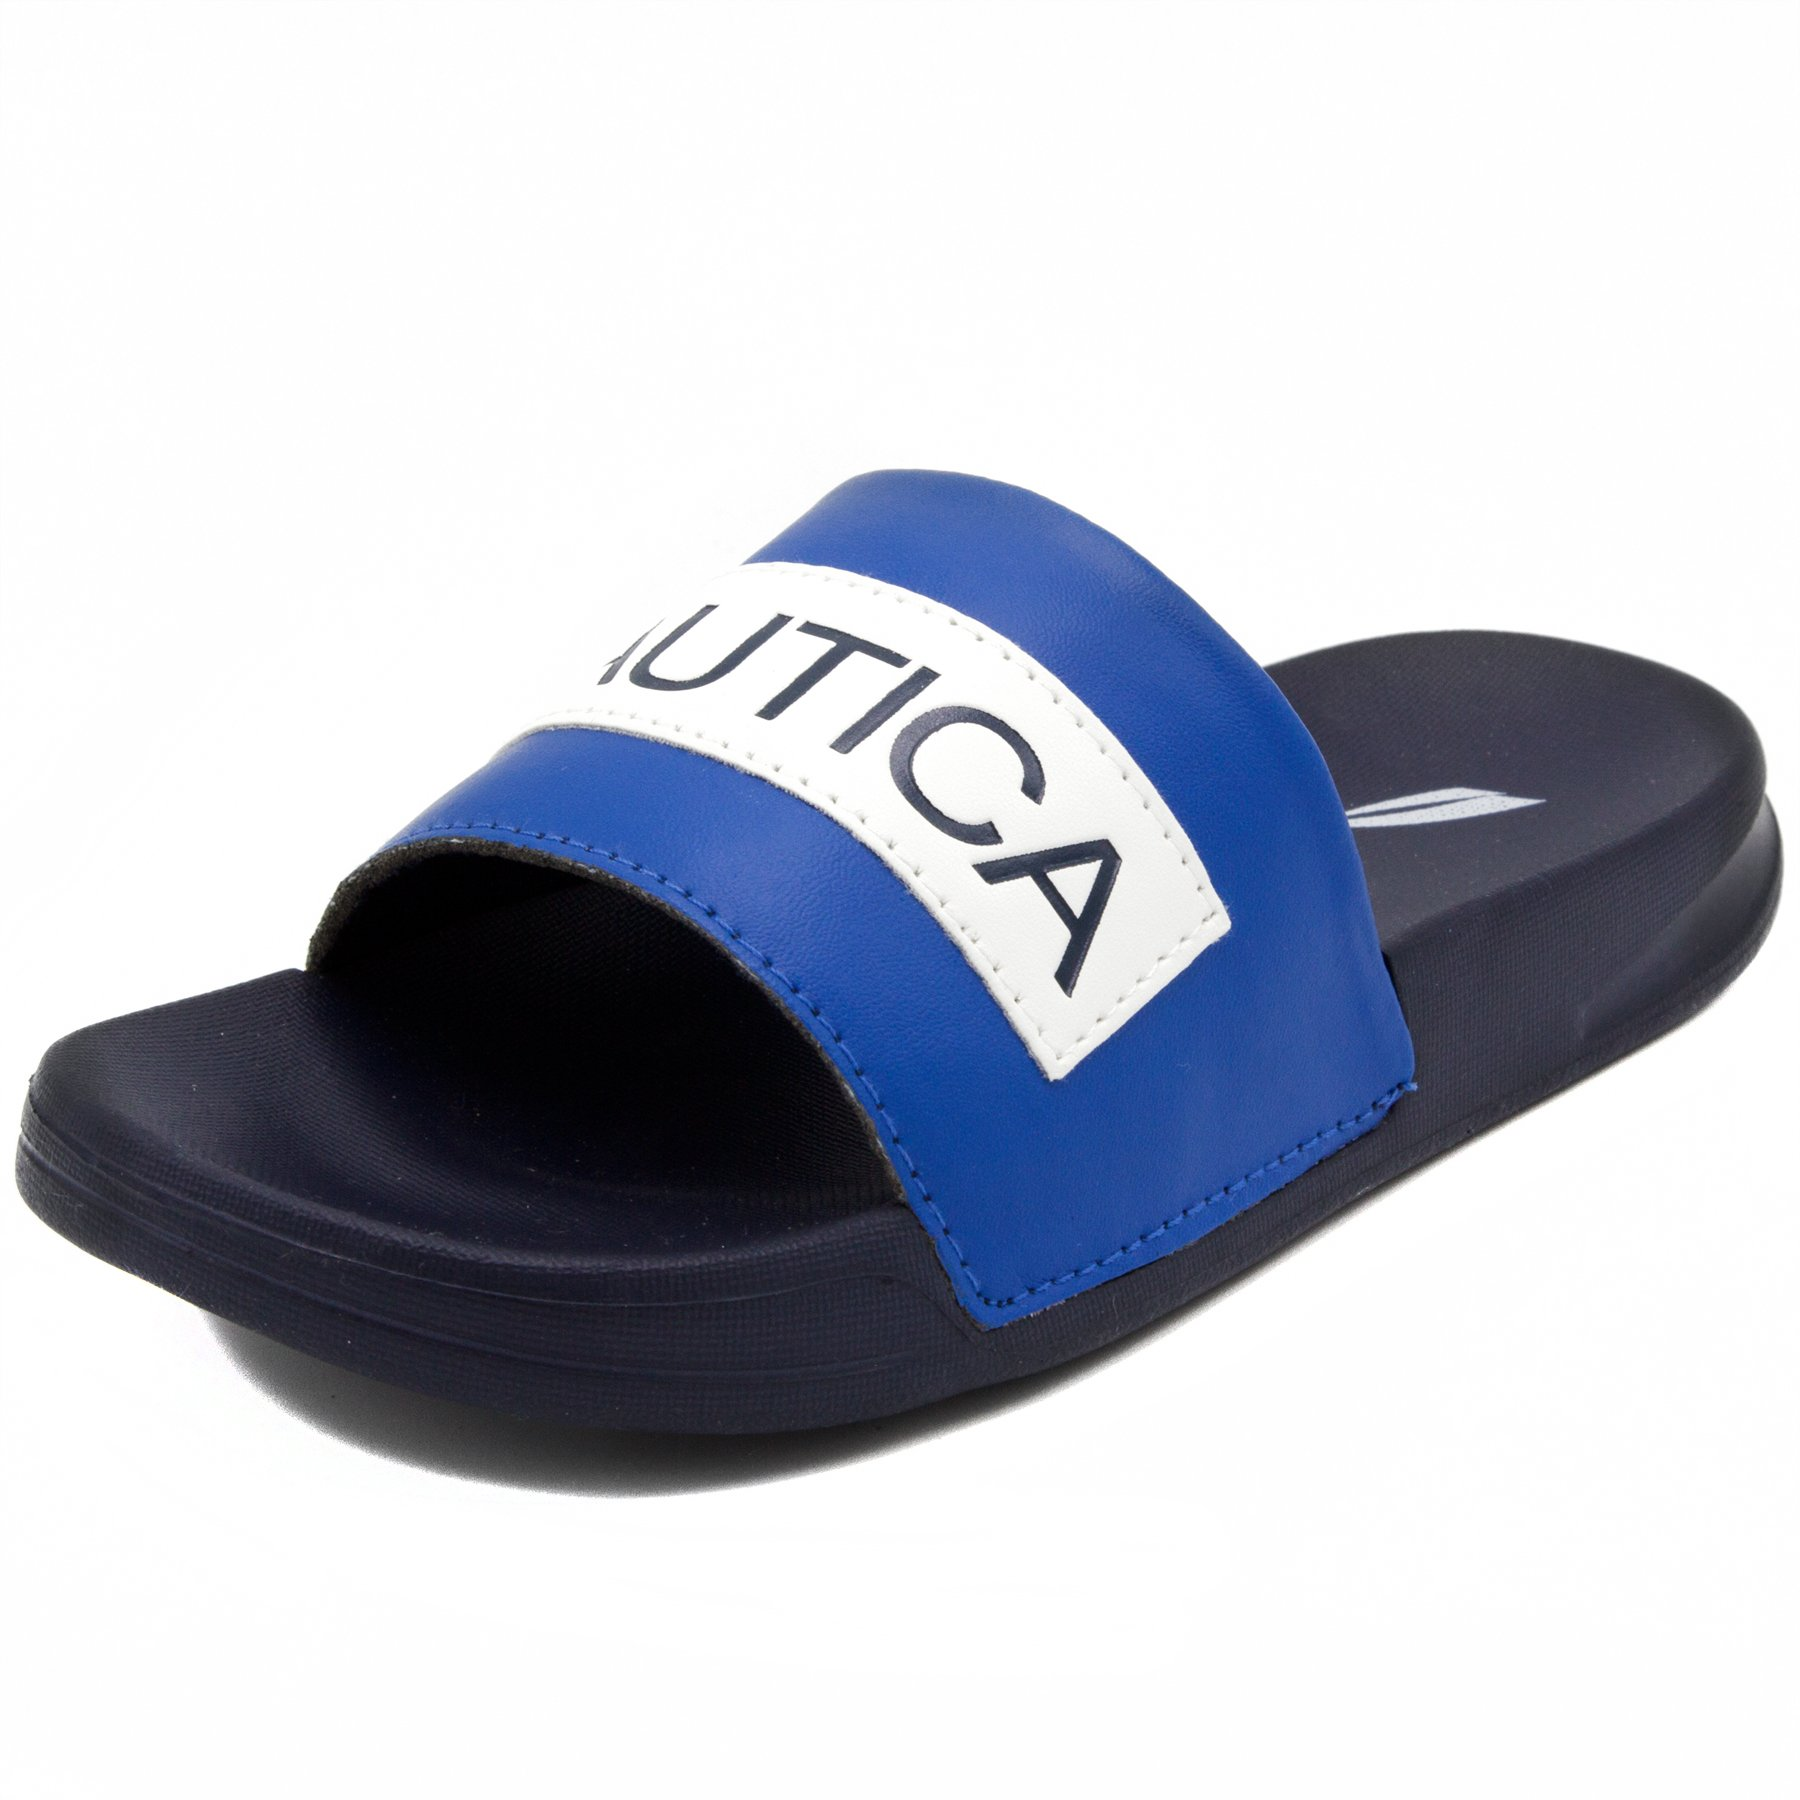 Nautica Kids Slip-On Sandal Athletic Slide-Altair-Lapis Blue-1